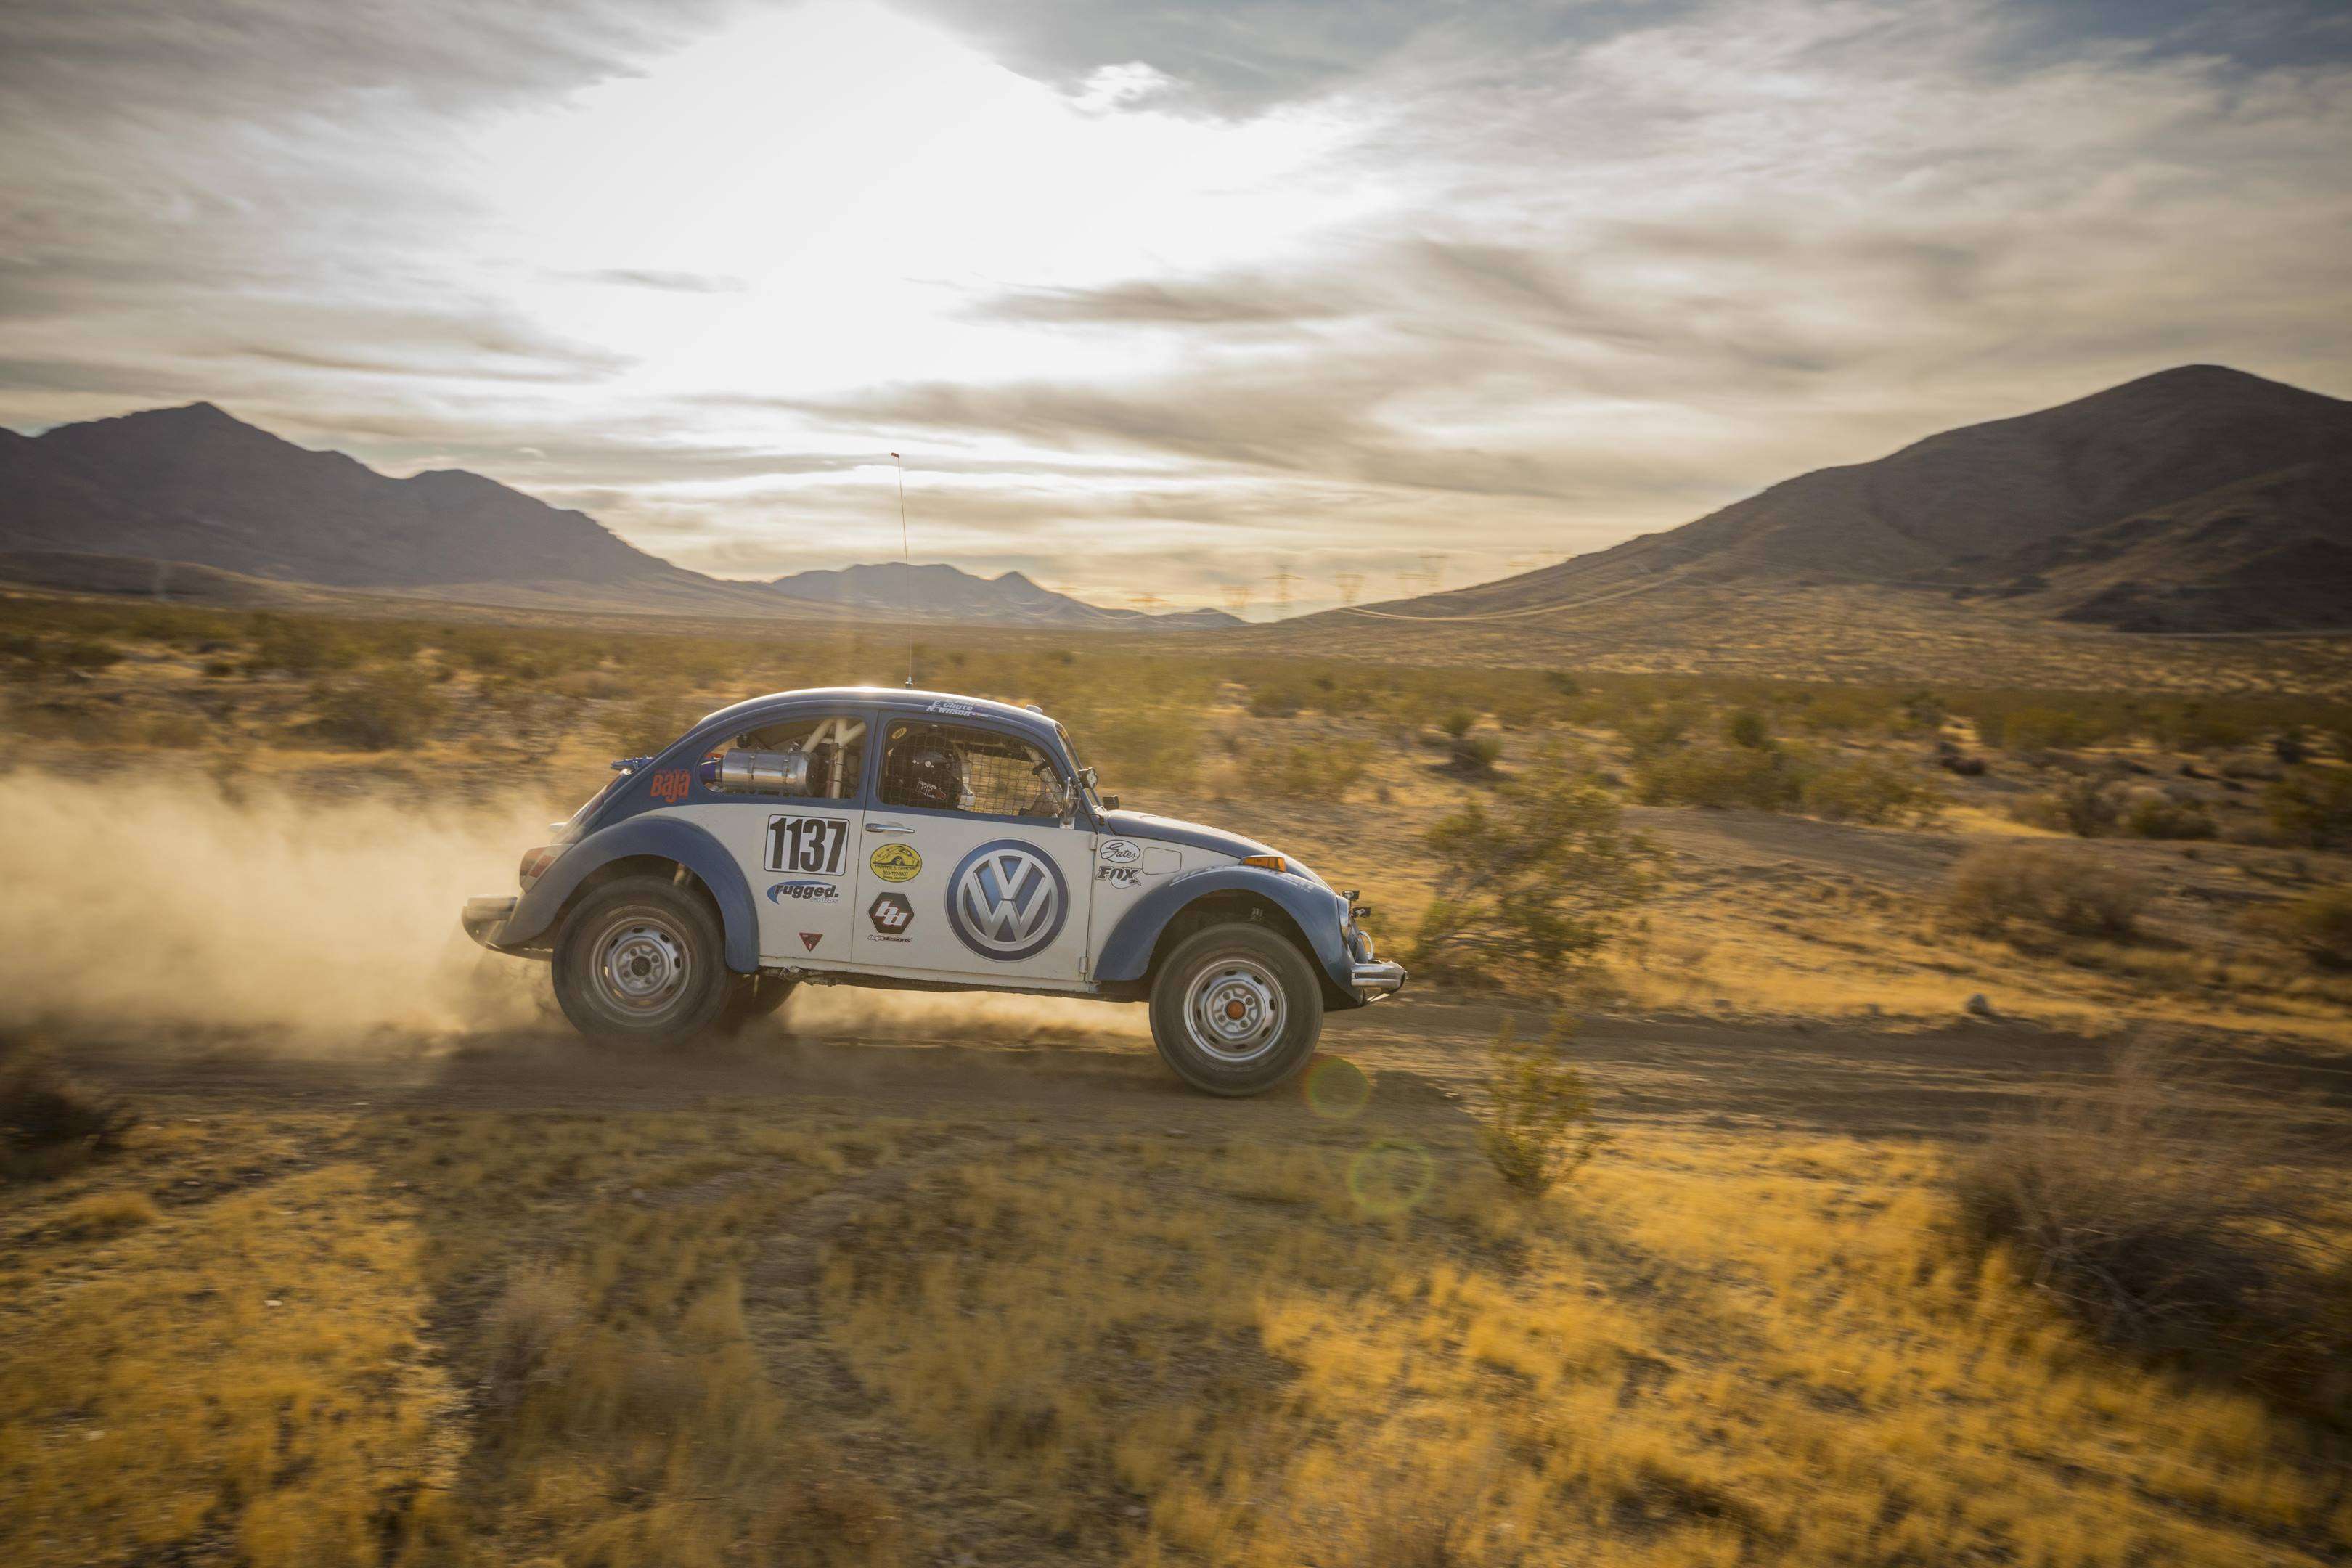 Colorado-based Project Baja spent seven years finessing its Bug into a feisty dust eater. It paid off in 2017 with the team's first Baja finish, in 58 hours.